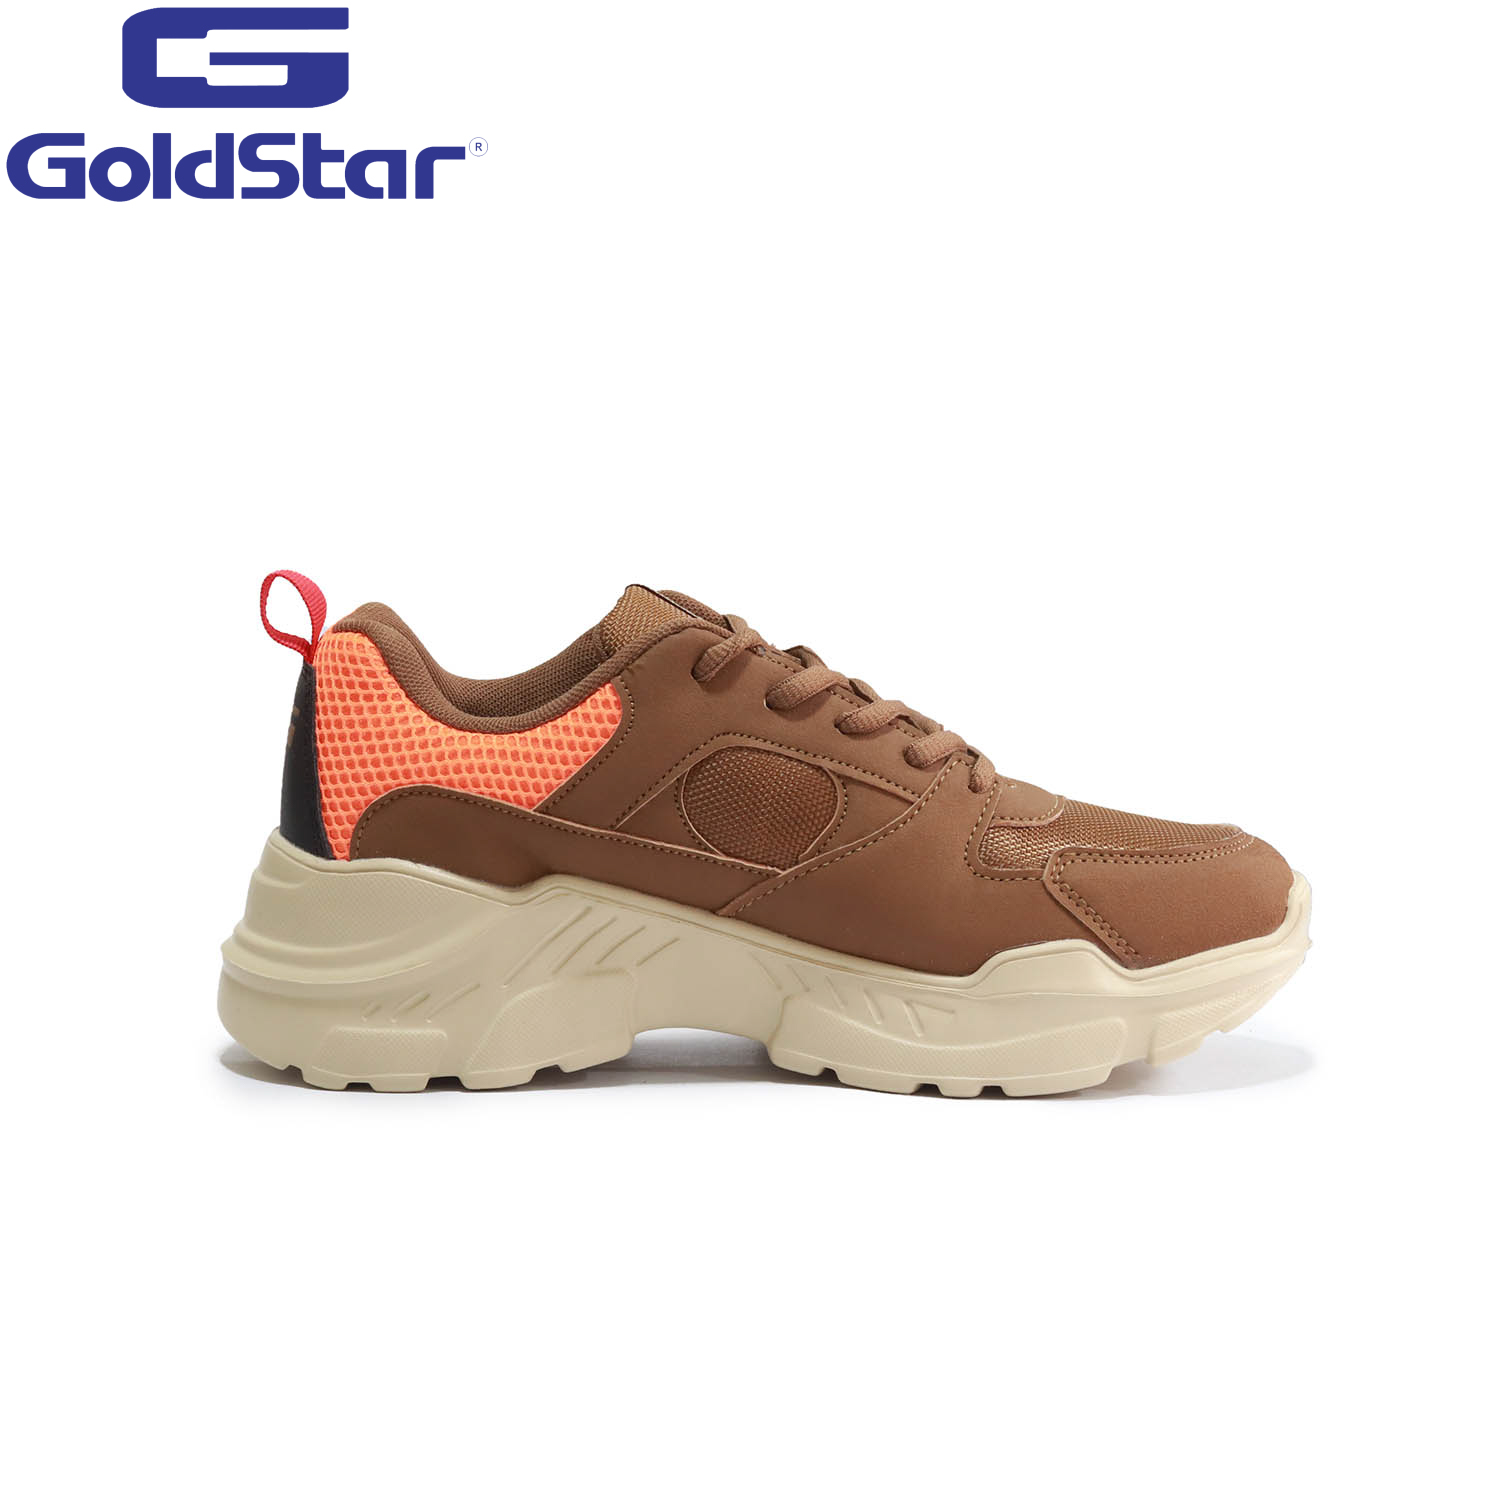 Goldstar Brown / Orange Sports Shoes For Men - 9137